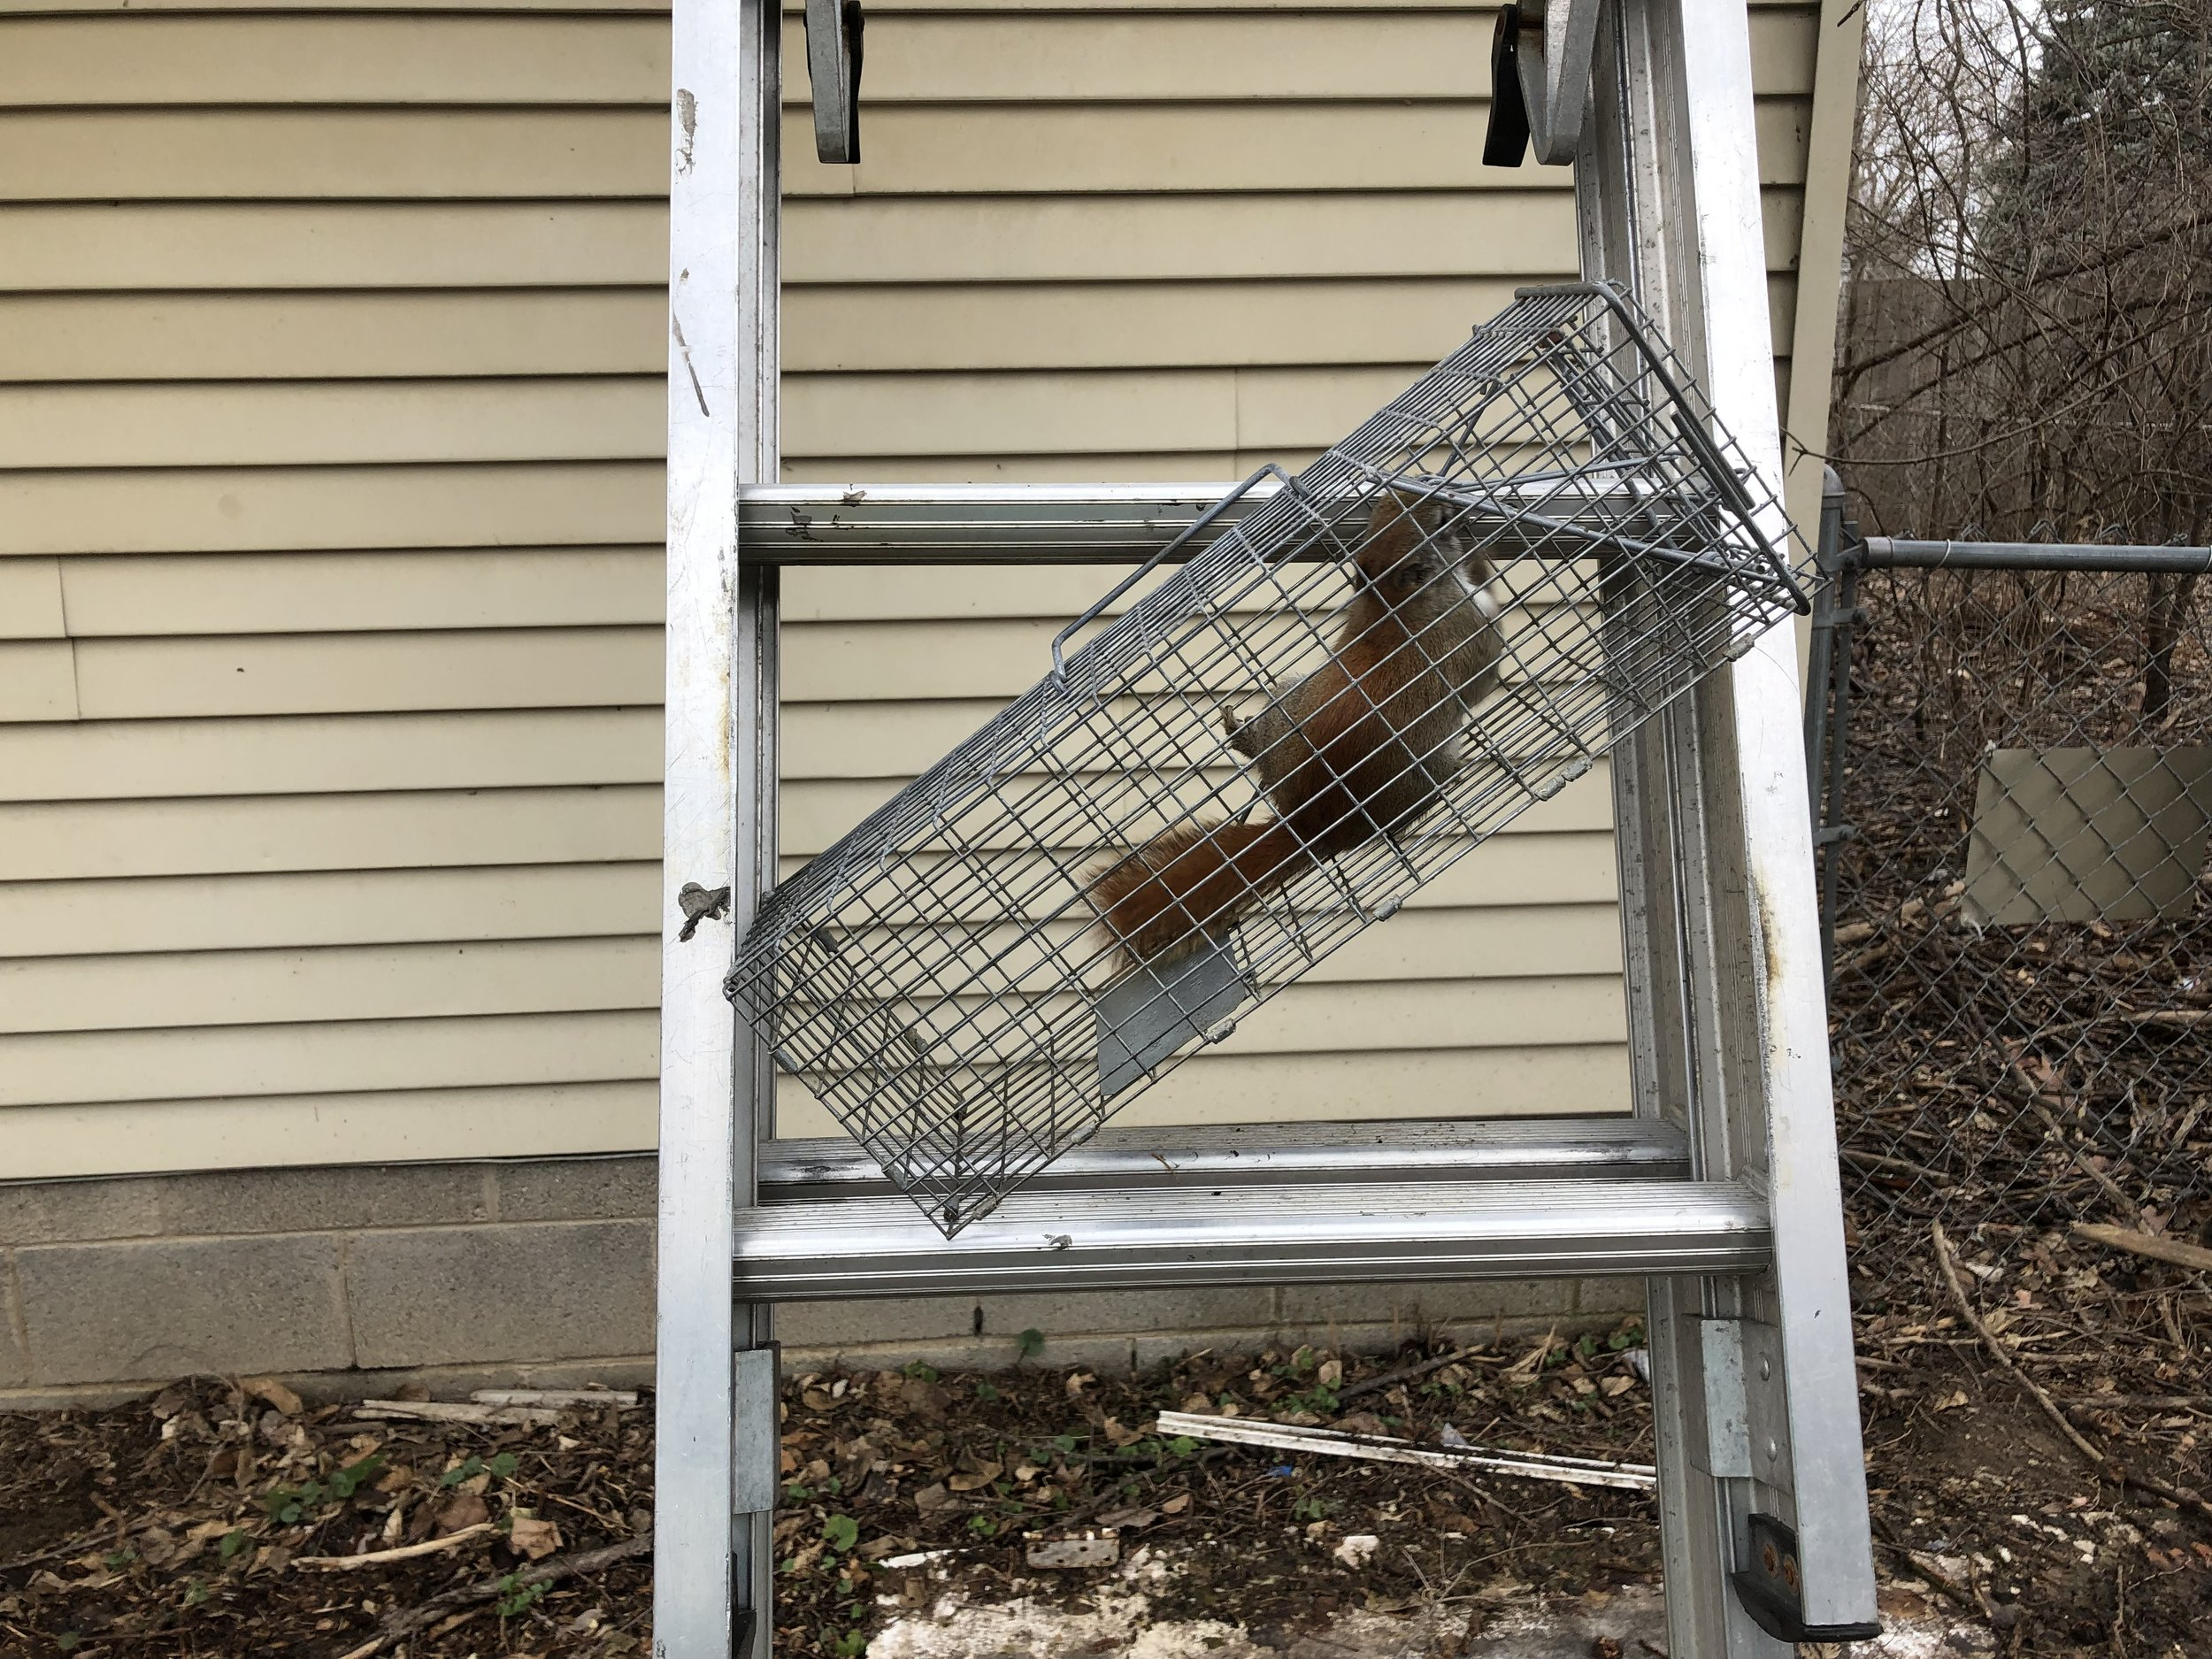 Red Squirrel moved in just before spring.